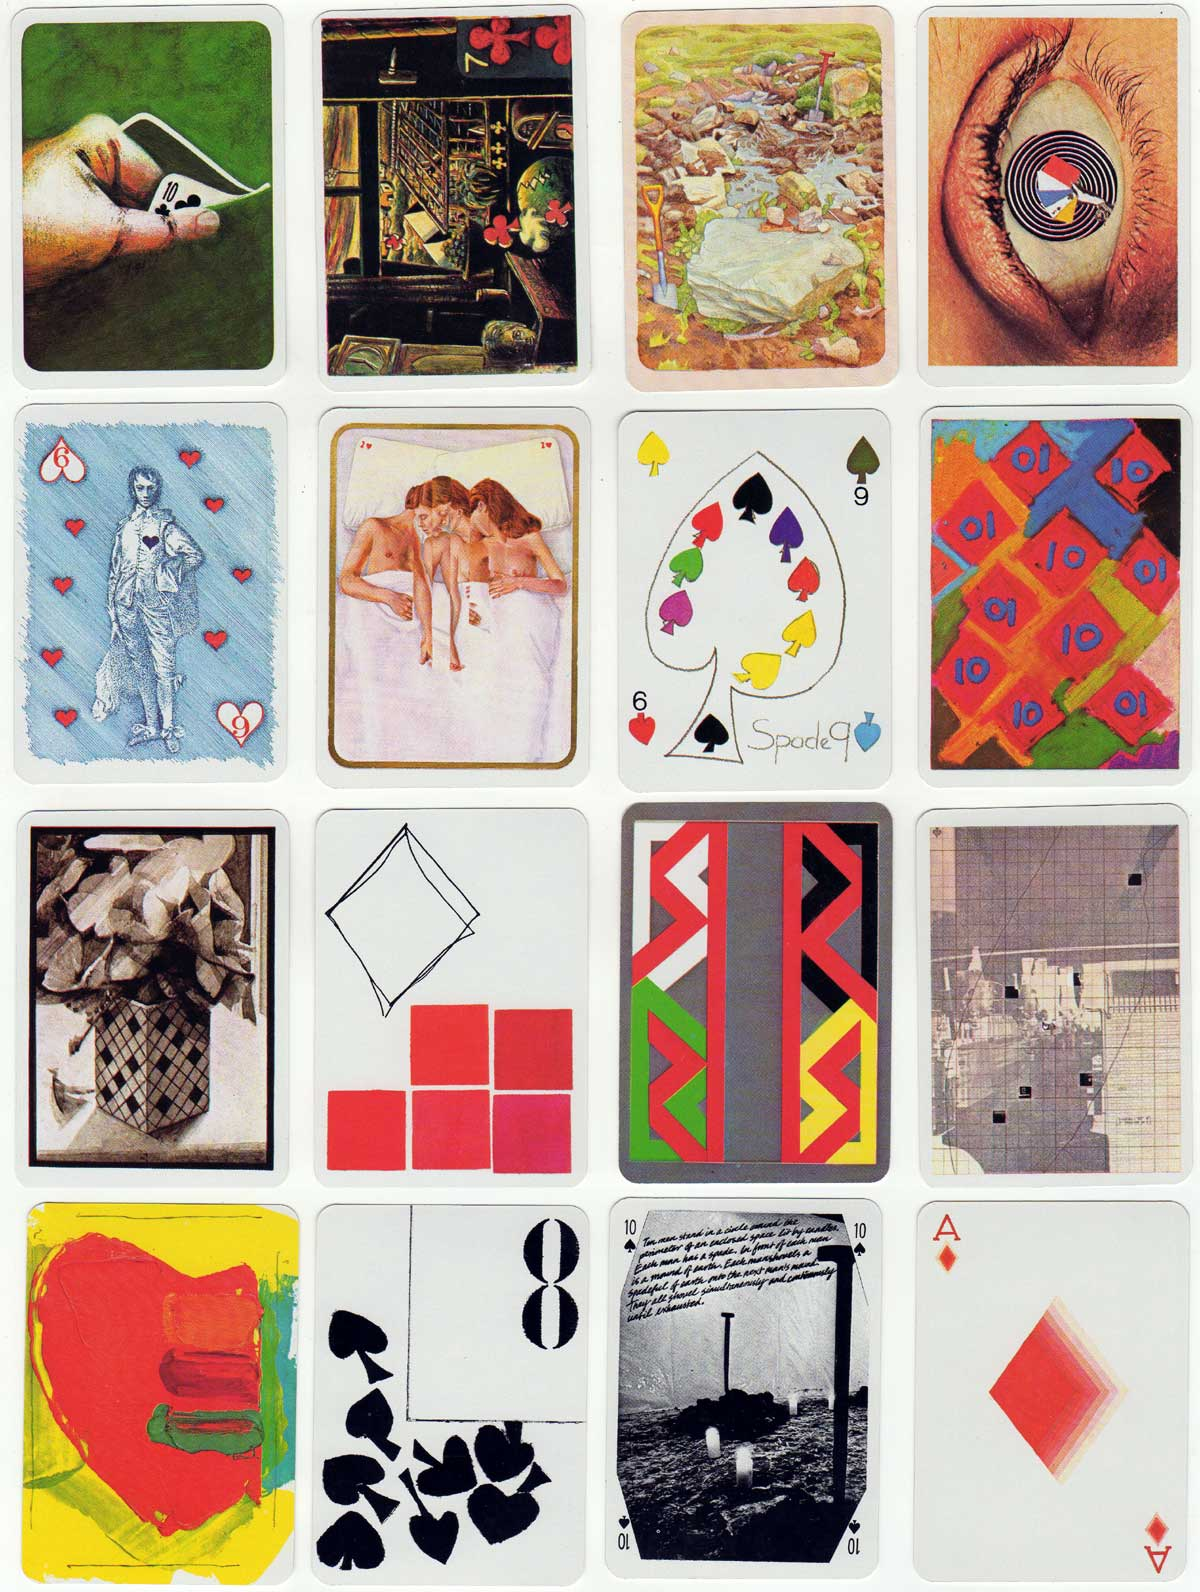 The Deck of Cards by Andrew Jones Art 1979